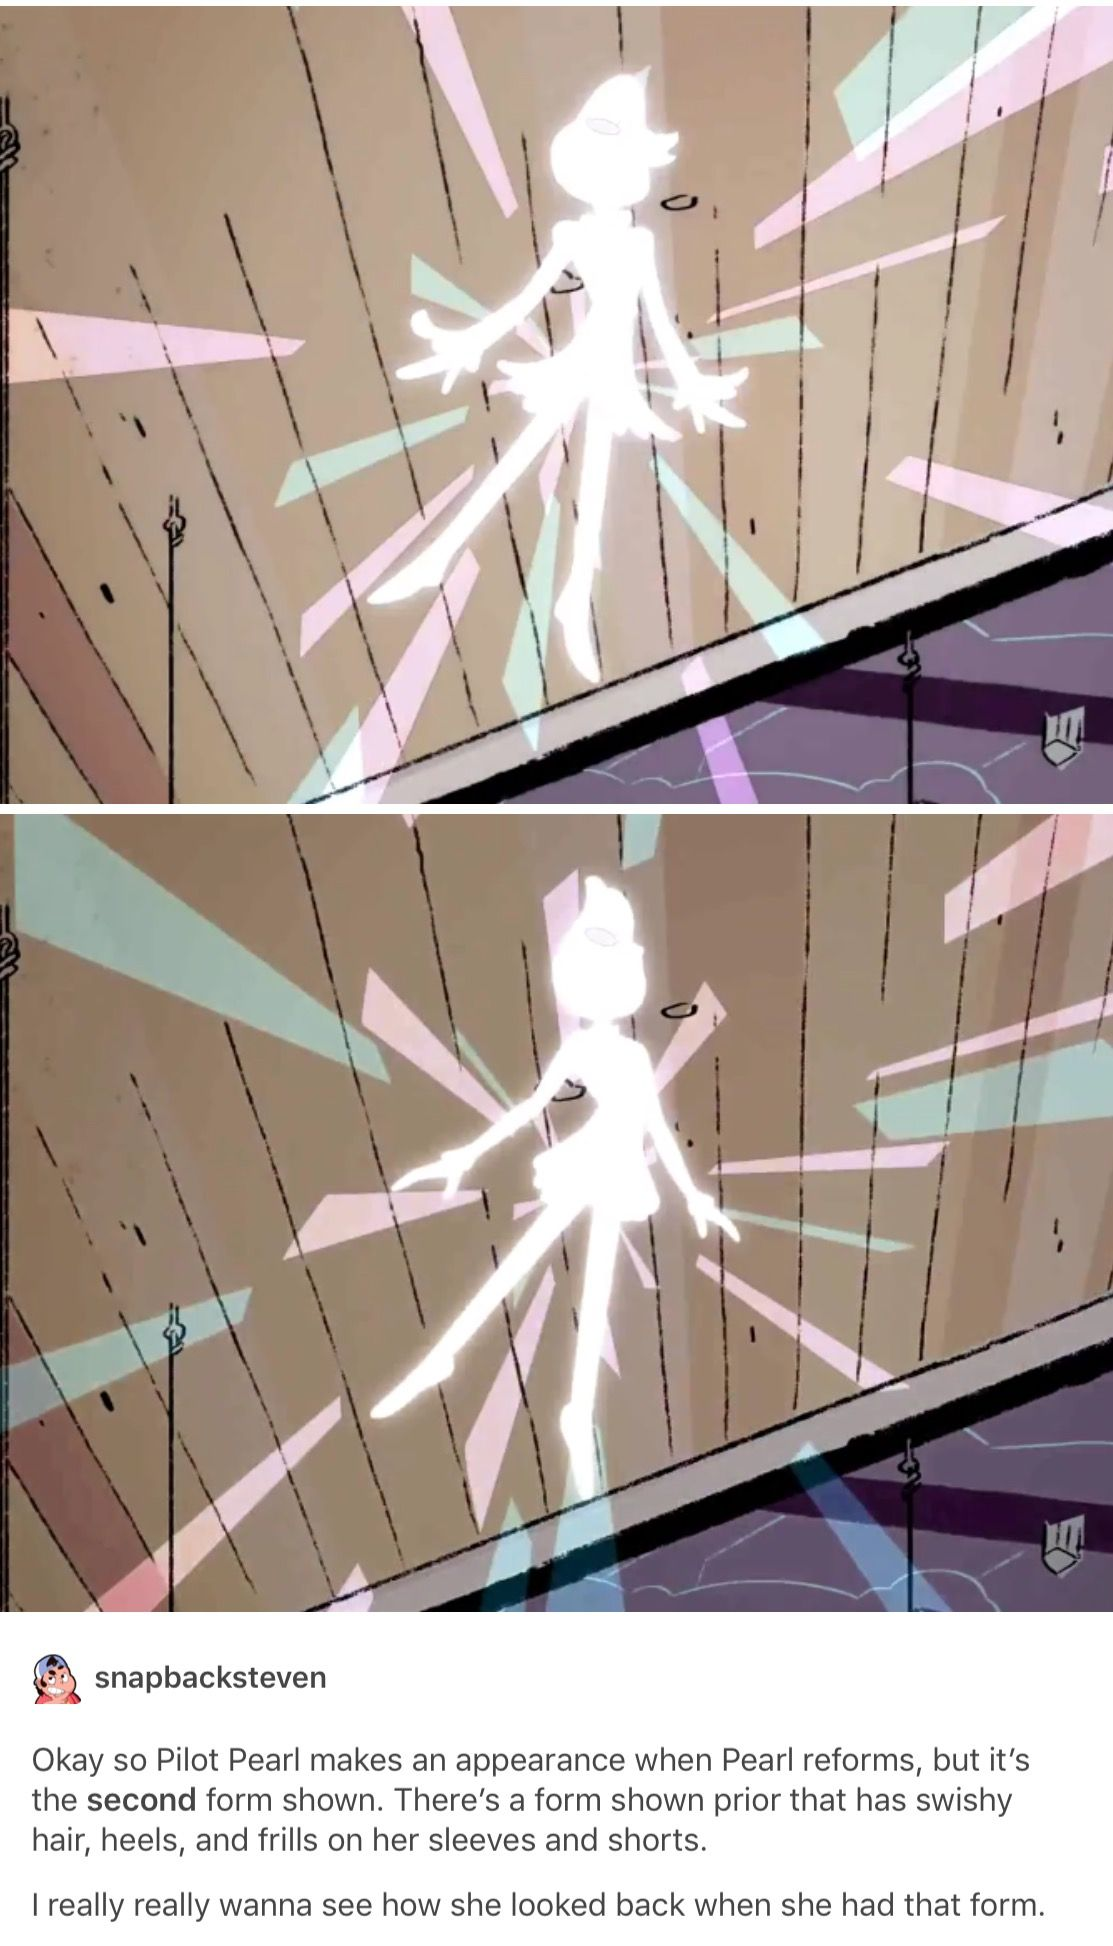 I Just Want A Time Where Pearl Had Her Old Forms And I Ll